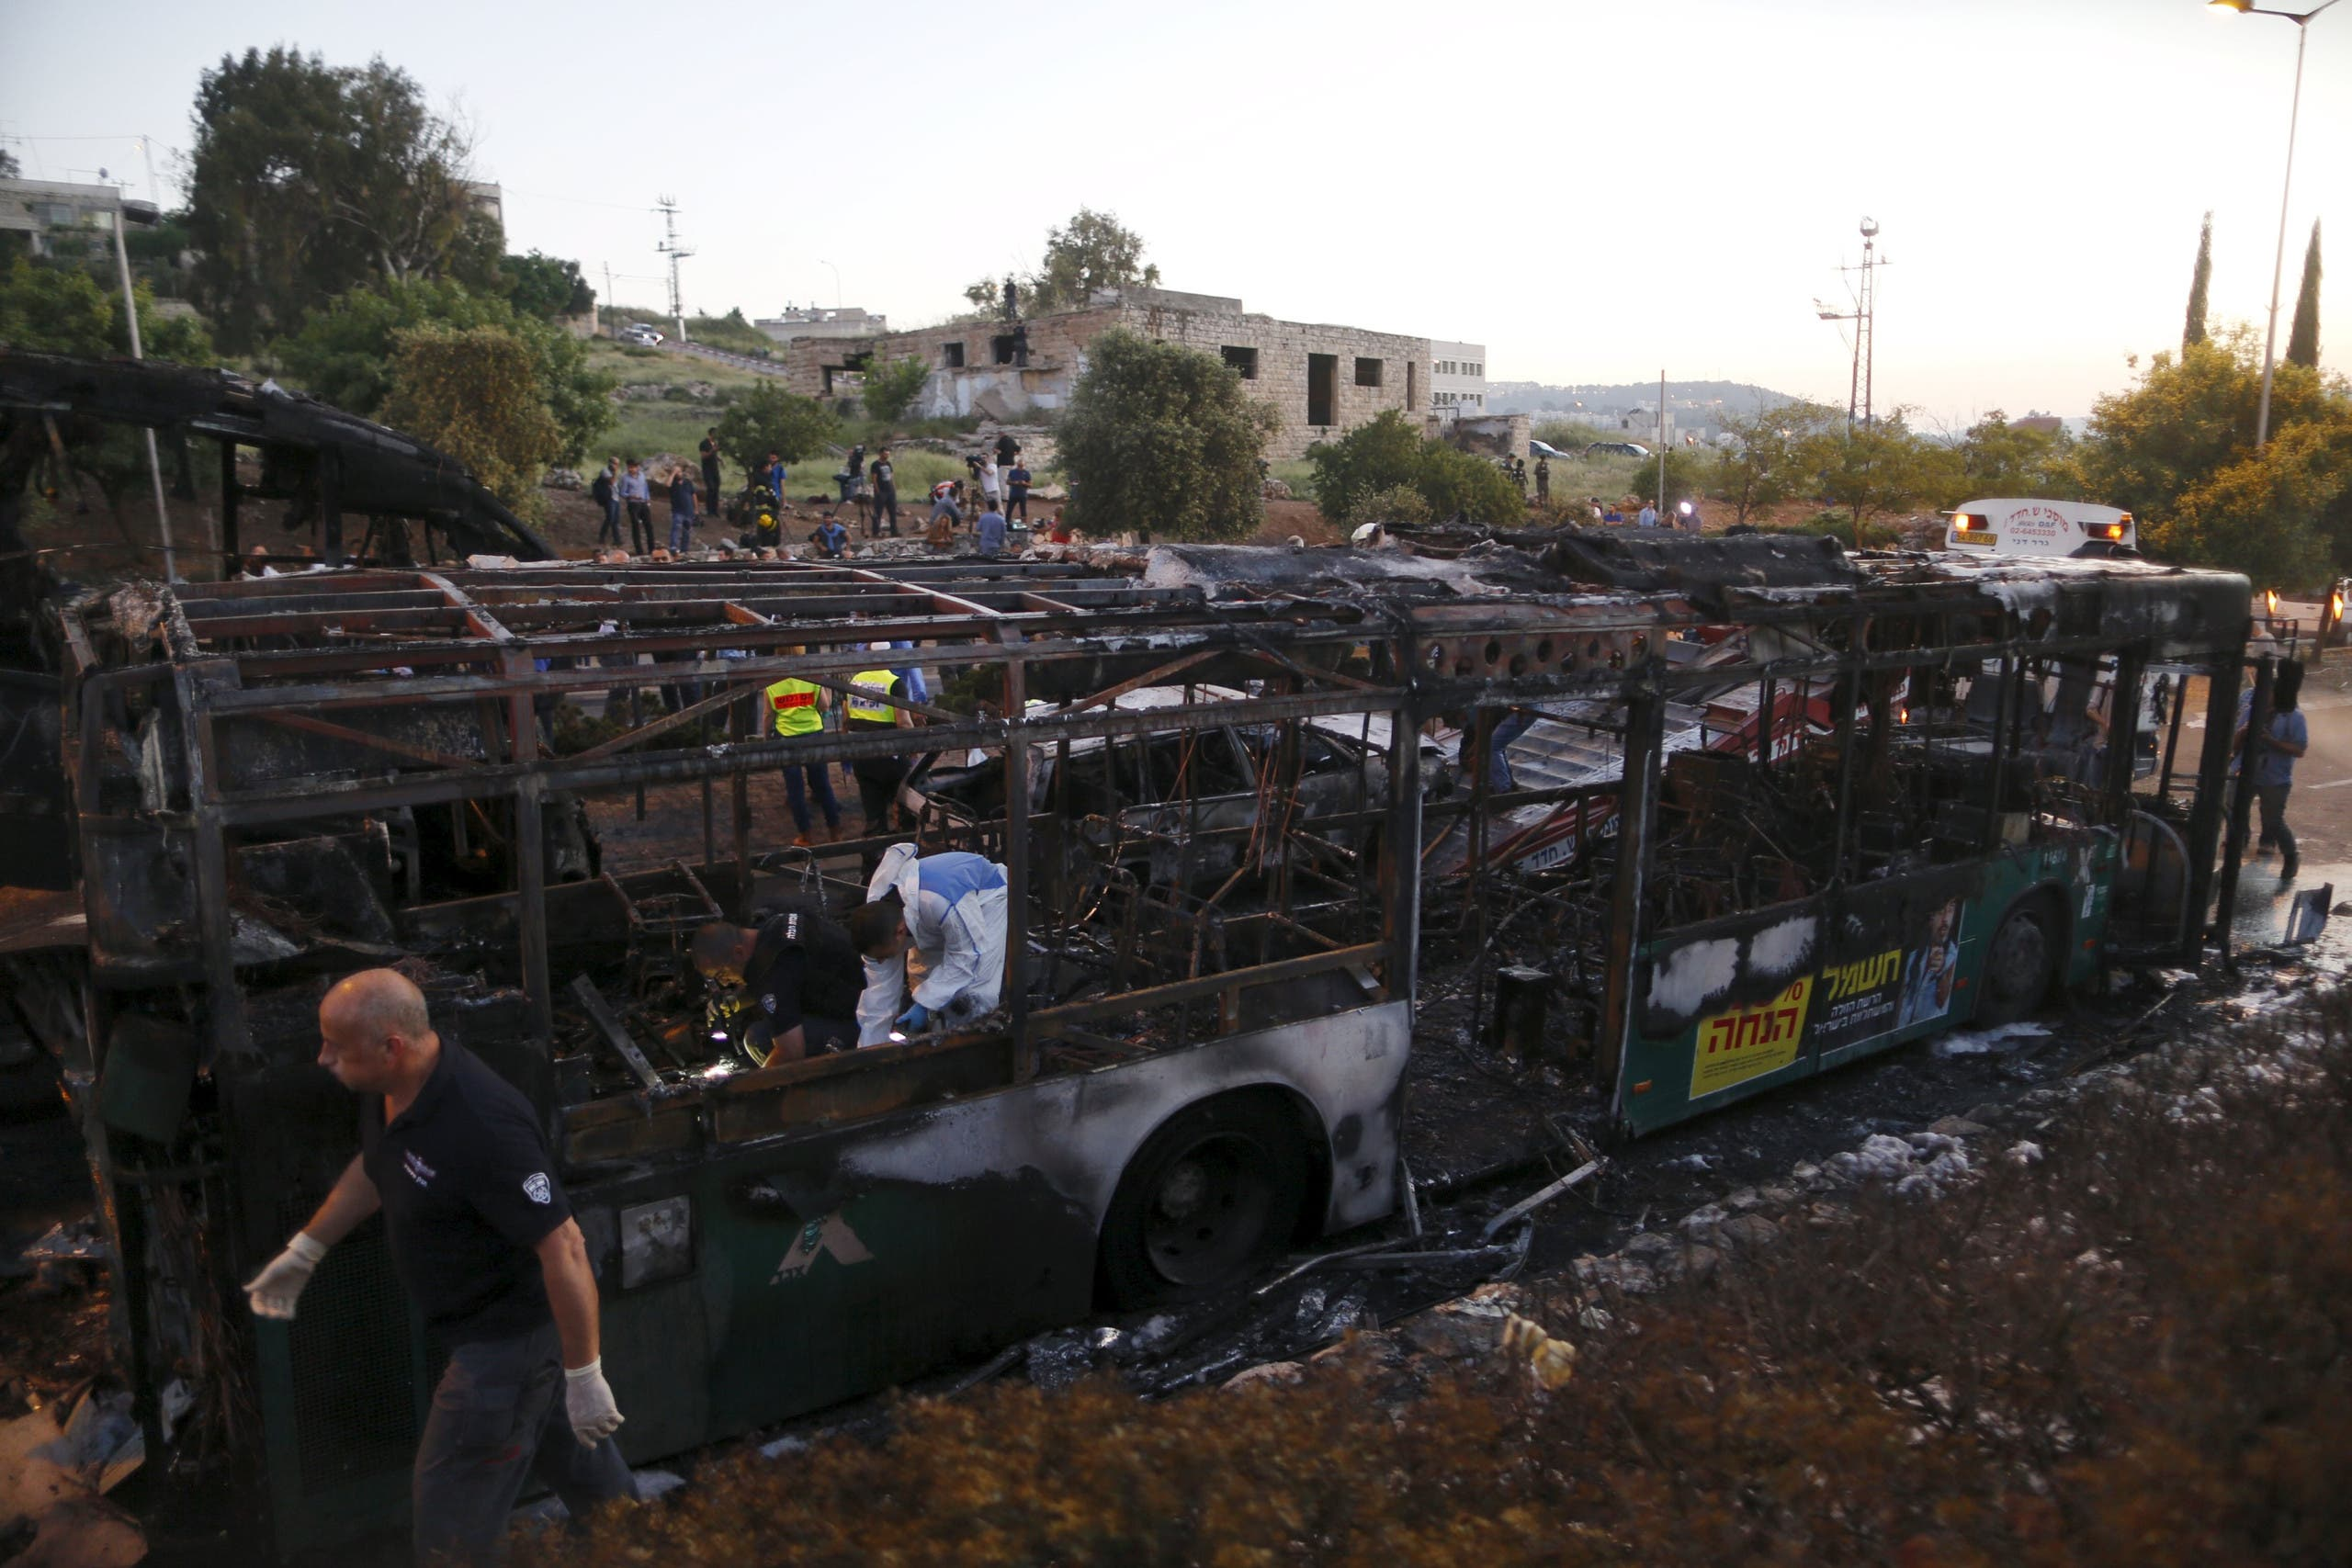 Israeli police forensic experts work at the scene after an explosion tore through a bus in Jerusalem on Monday REUTERS